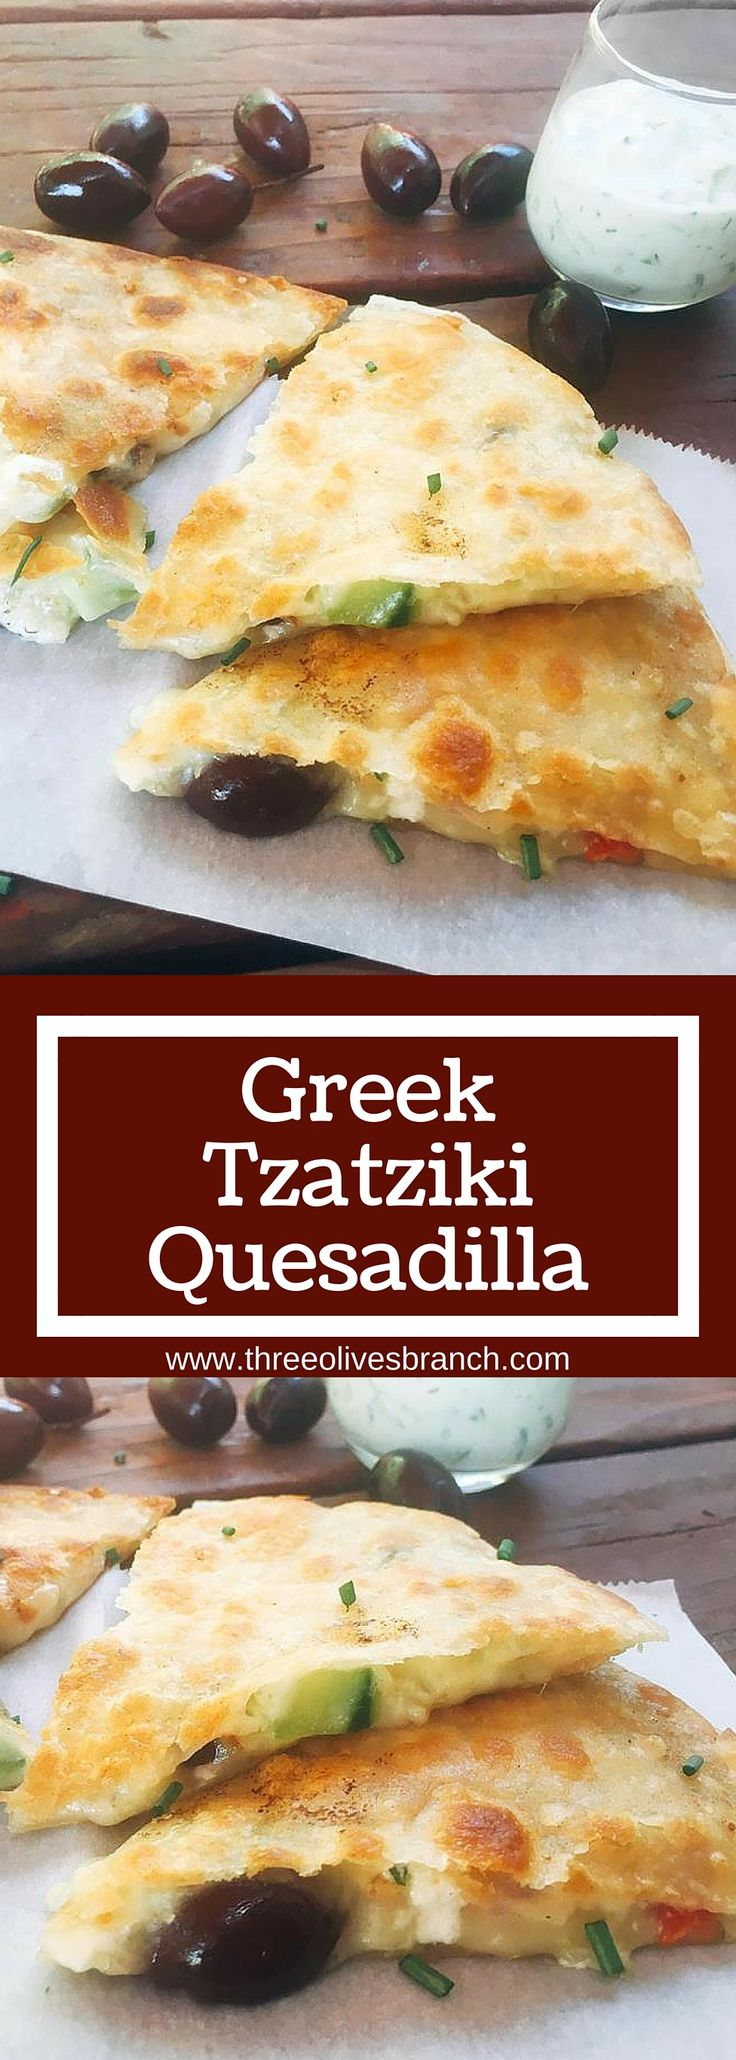 Ready in just 10 minutes! Greek Tzatziki Quesadillas are a great way to sneak some veggies into a fun snack or meal! All the flavors of Greek salad in quesadilla form with some tzatziki sauce inside for flavor, plus sauce for dipping   www.threeolivesbranch.com